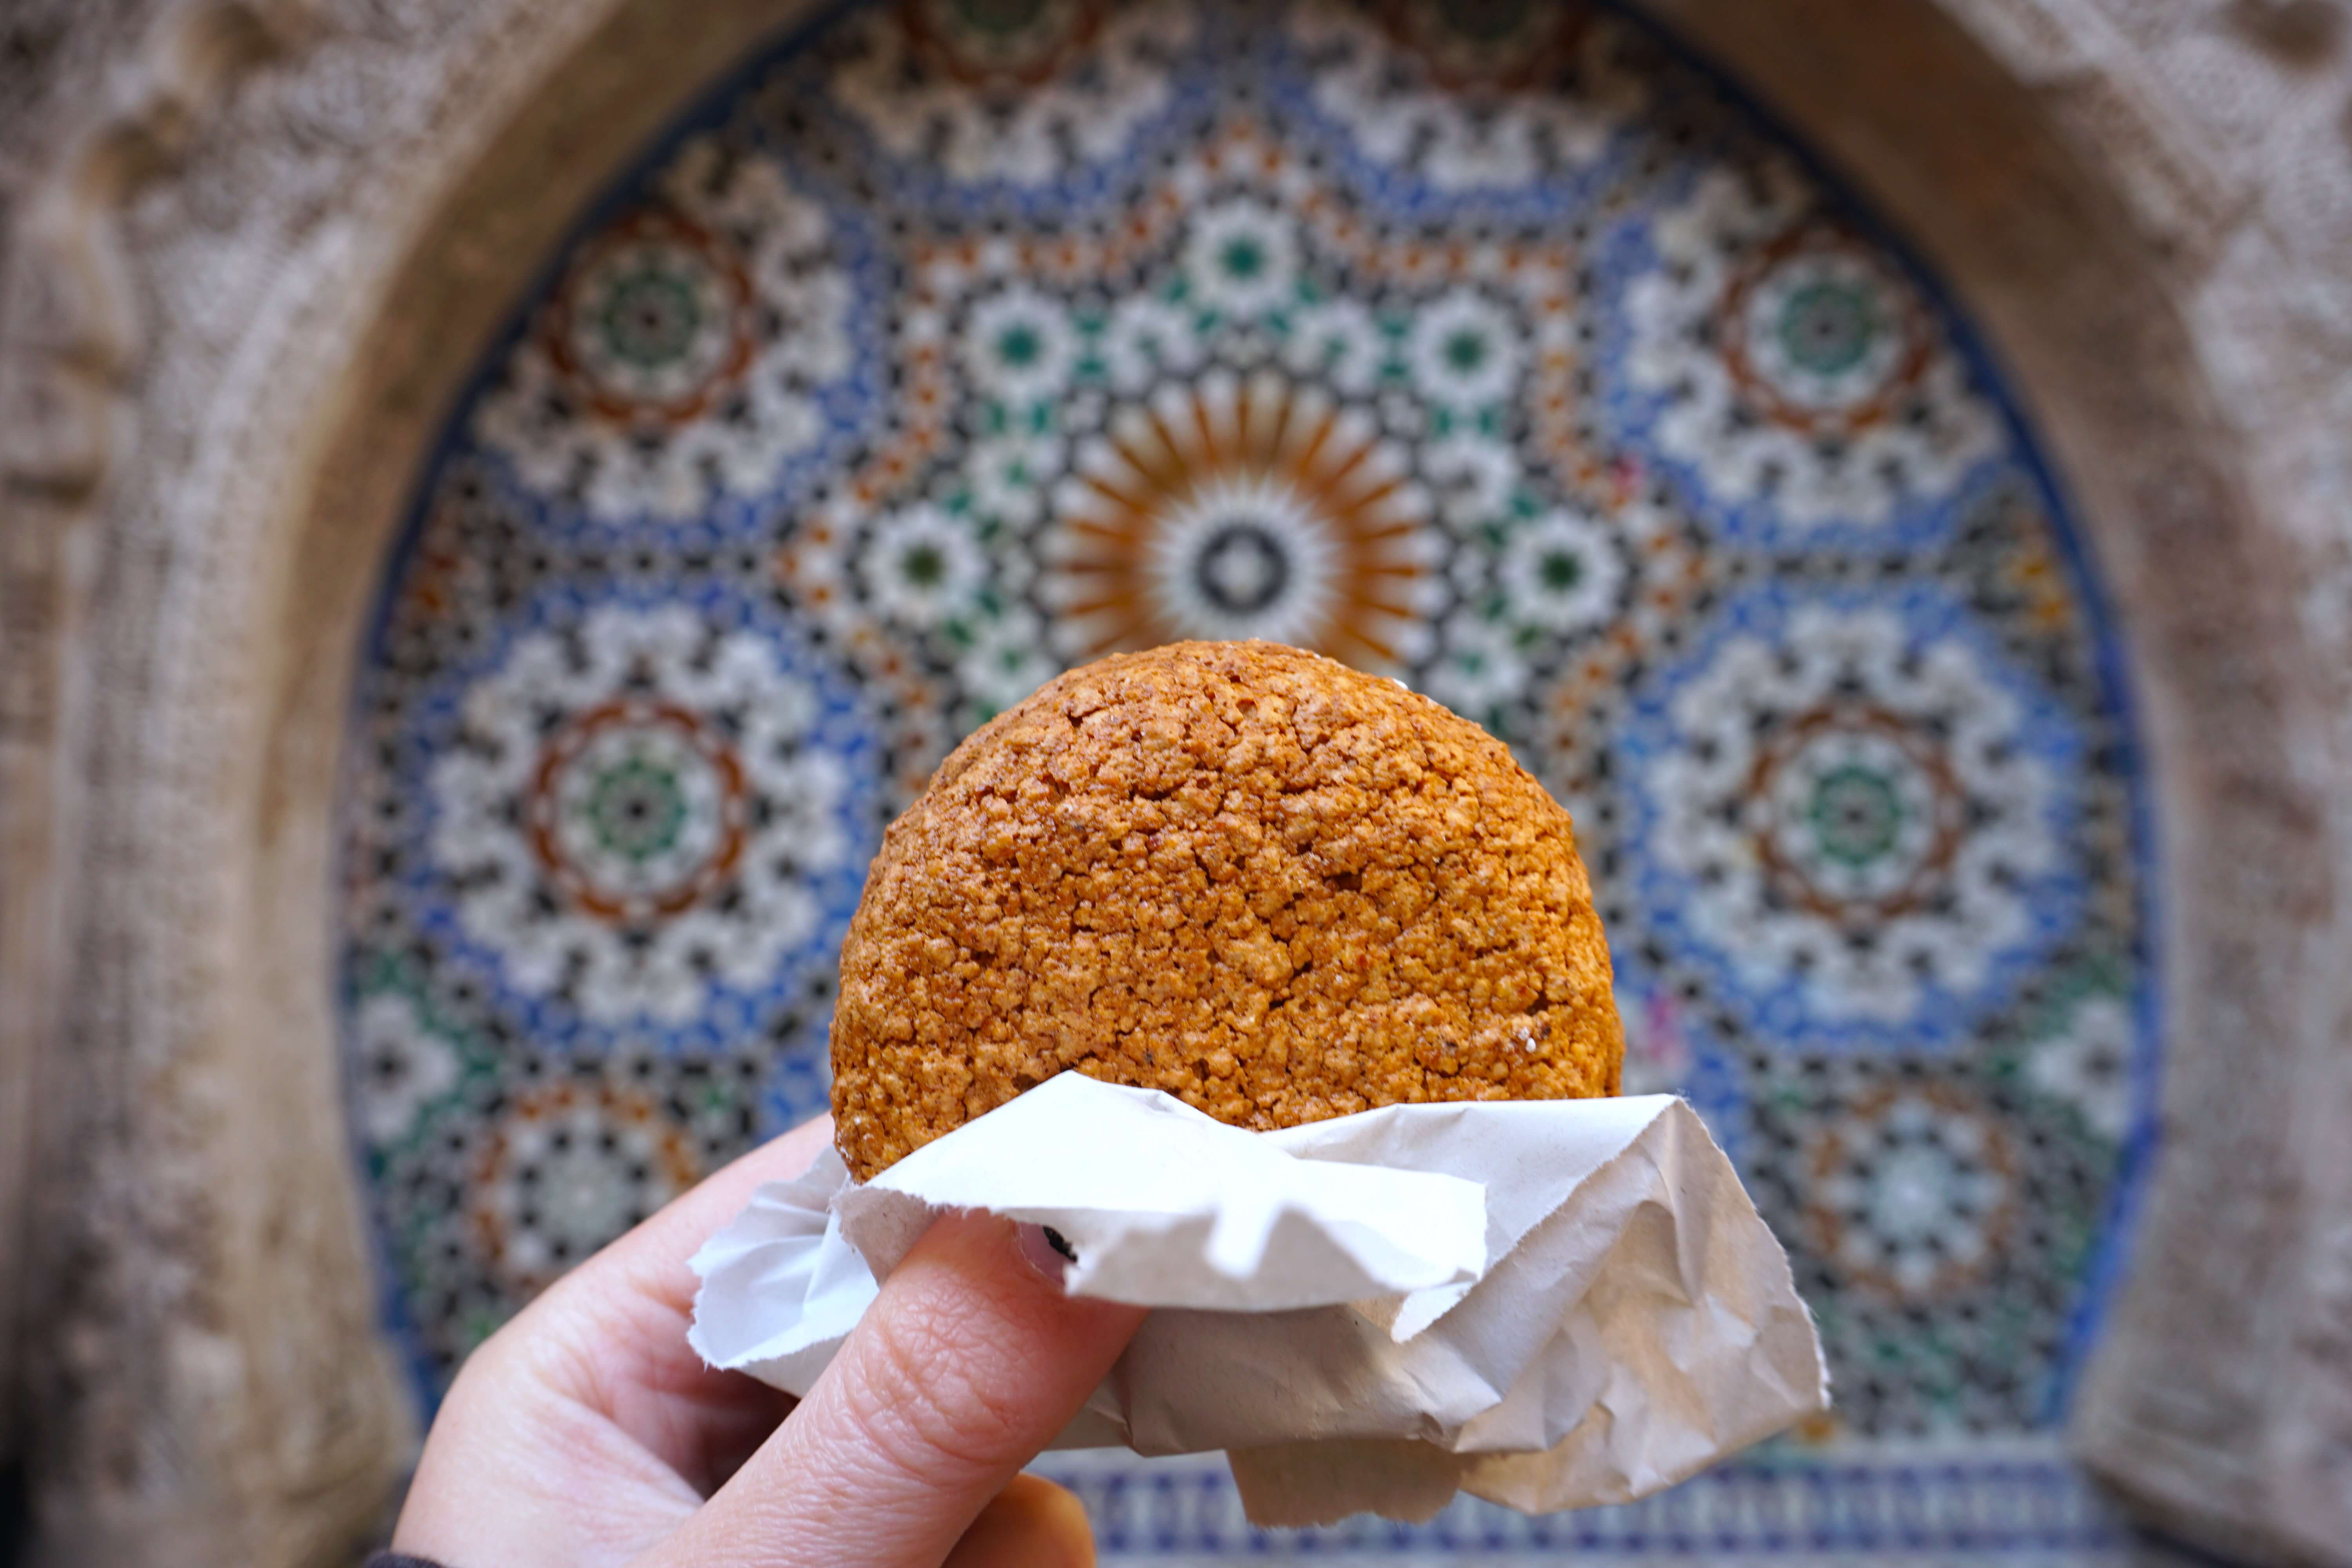 Moroccan Cookies - Morocco Food Guide: Delicious foods you need to try while visiting Morocco